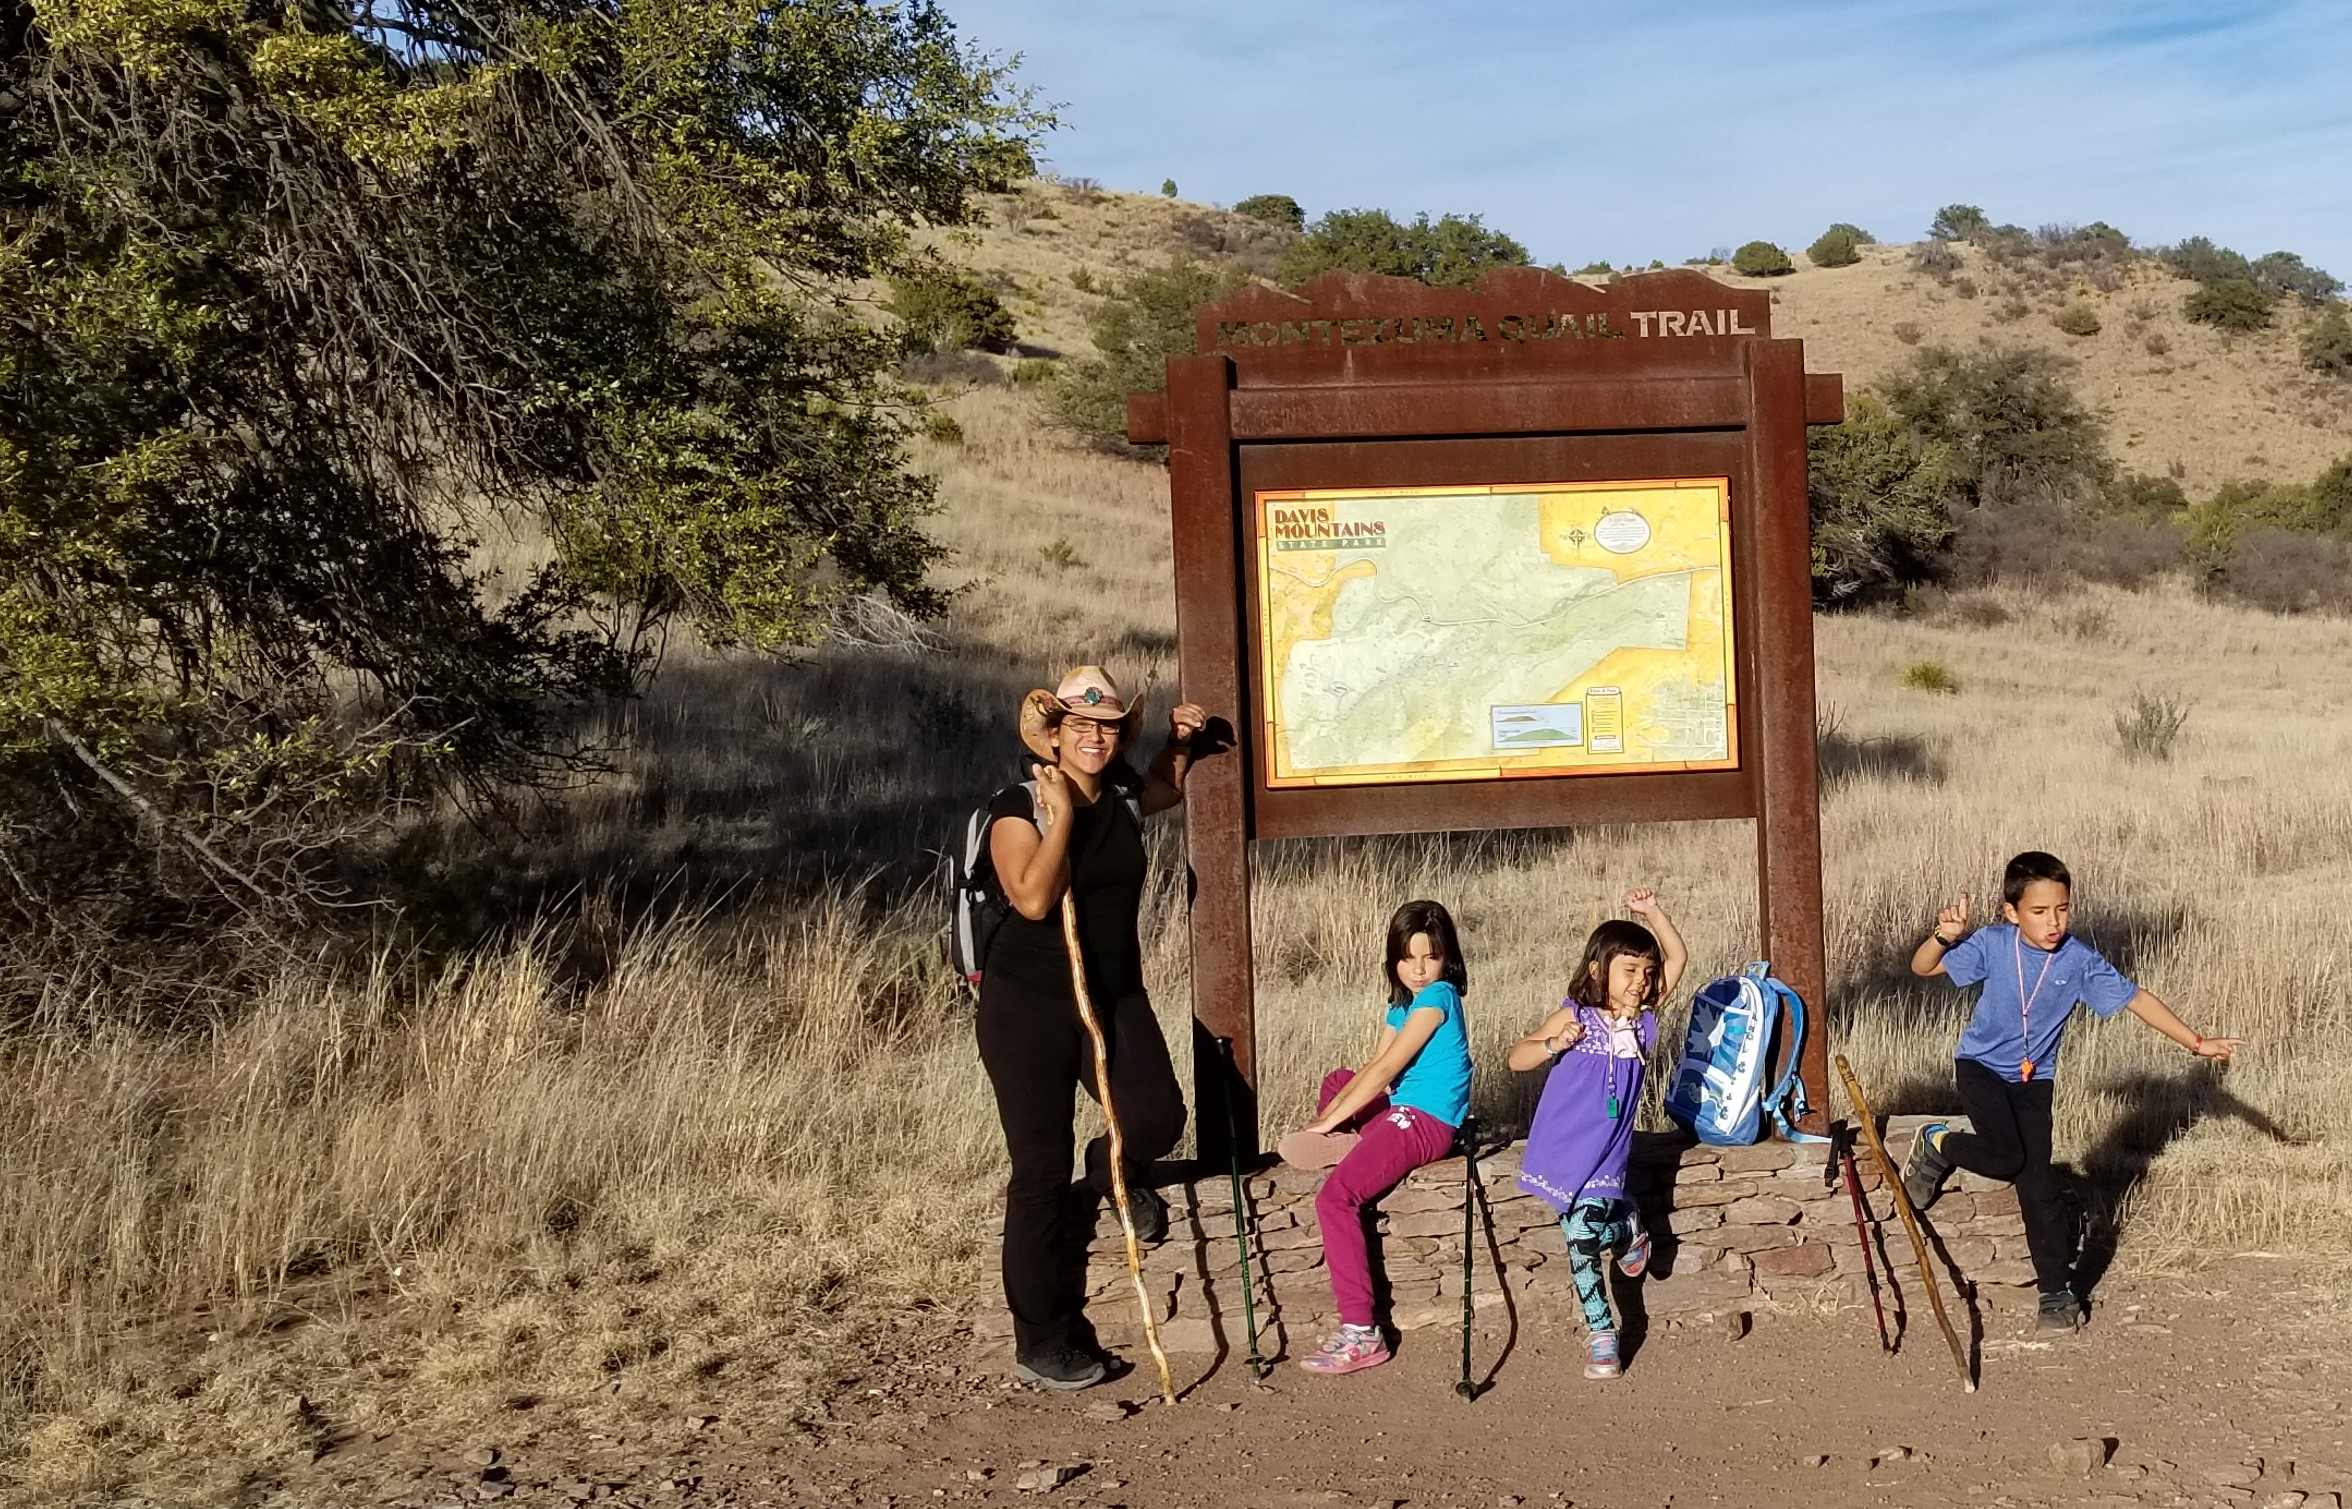 Mother, 9-year-old daughter, 4-year-old daughter, and 6-year-old son at a hiking trailhead sign.